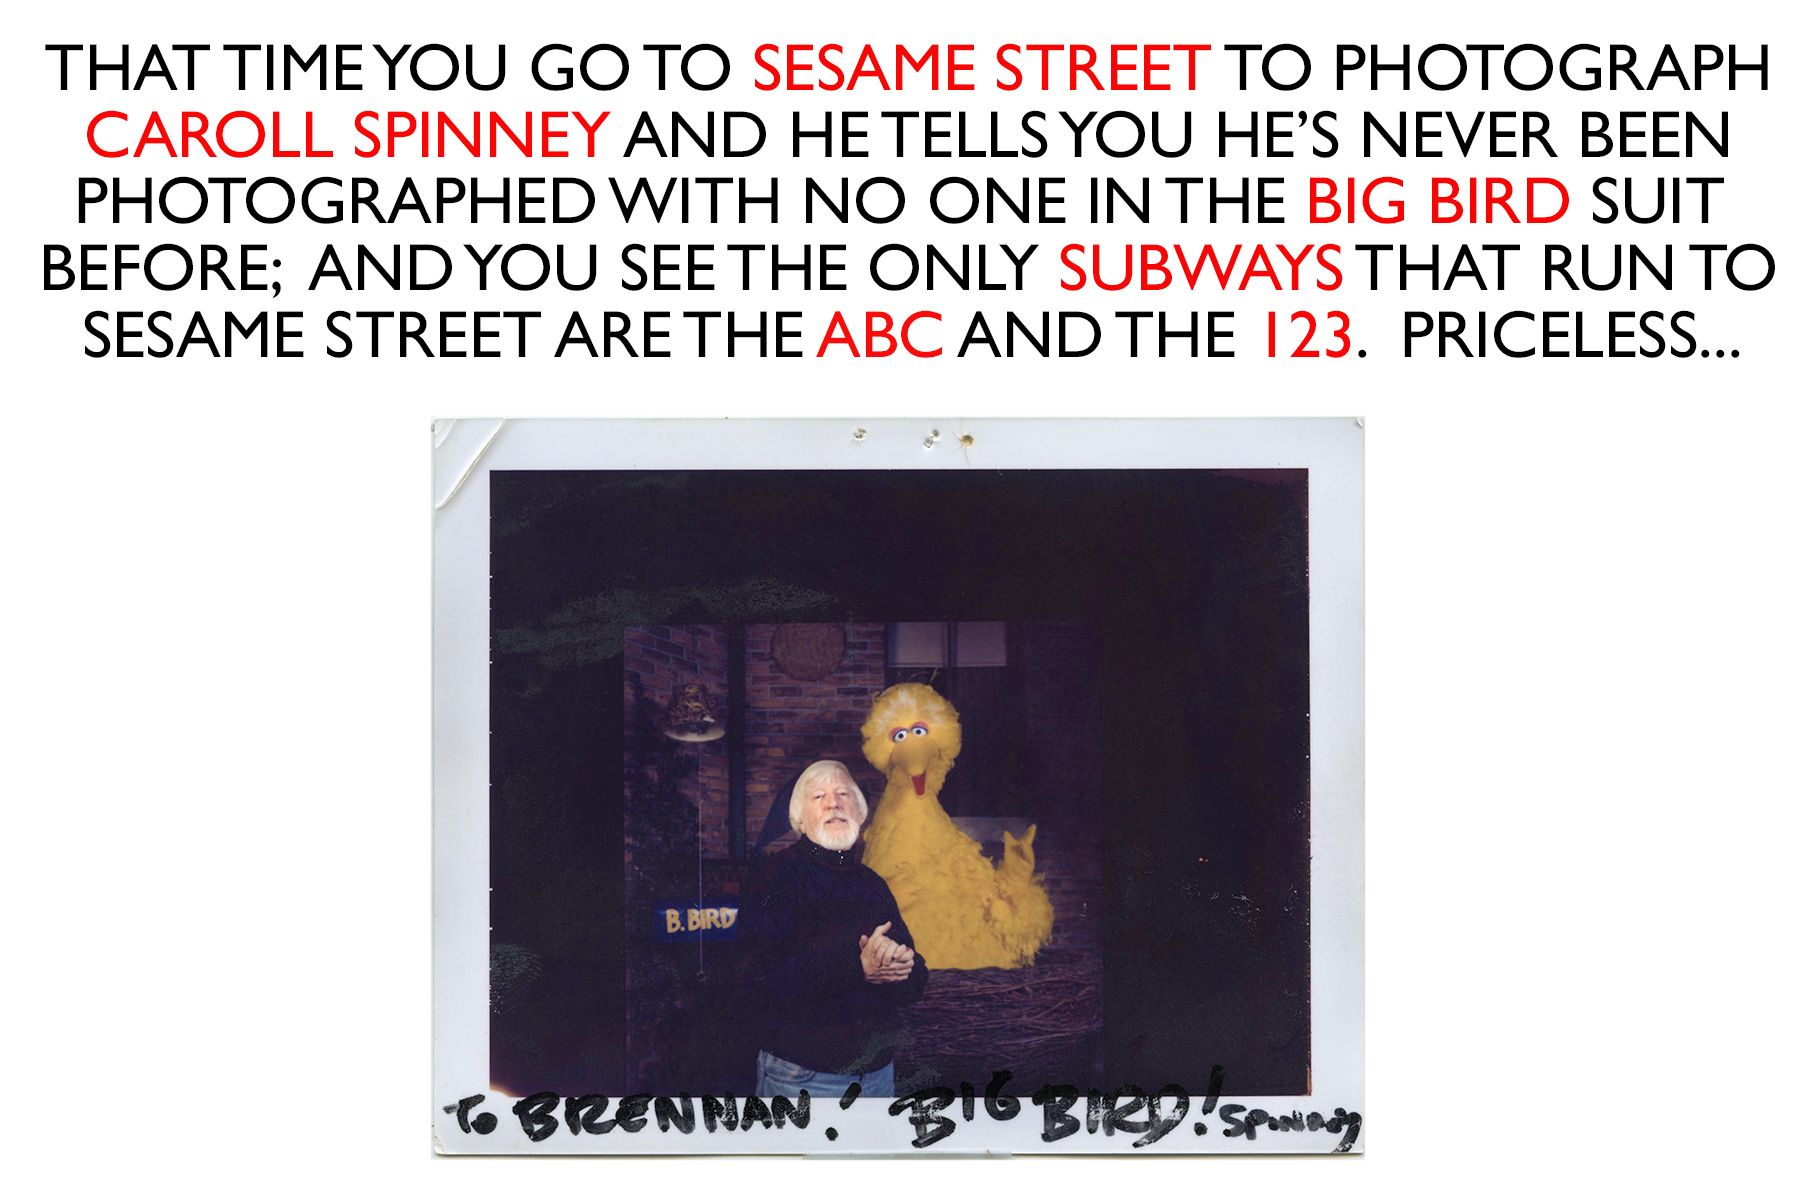 SPINNEY BIG BIRD HOMEPAGE.jpg